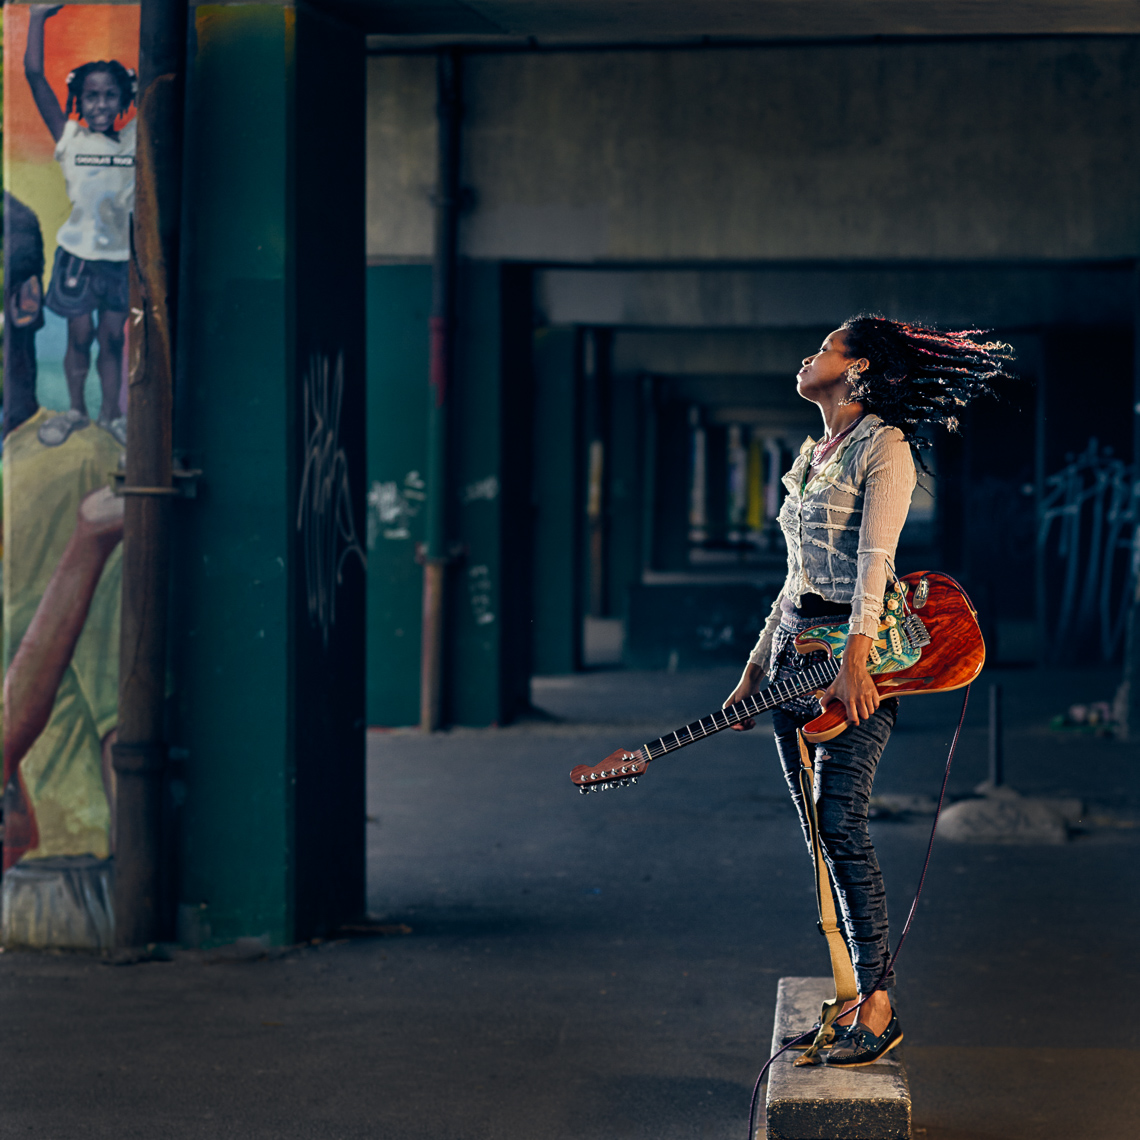 Kevin Steele - portrait of a musician and her guitar in the city